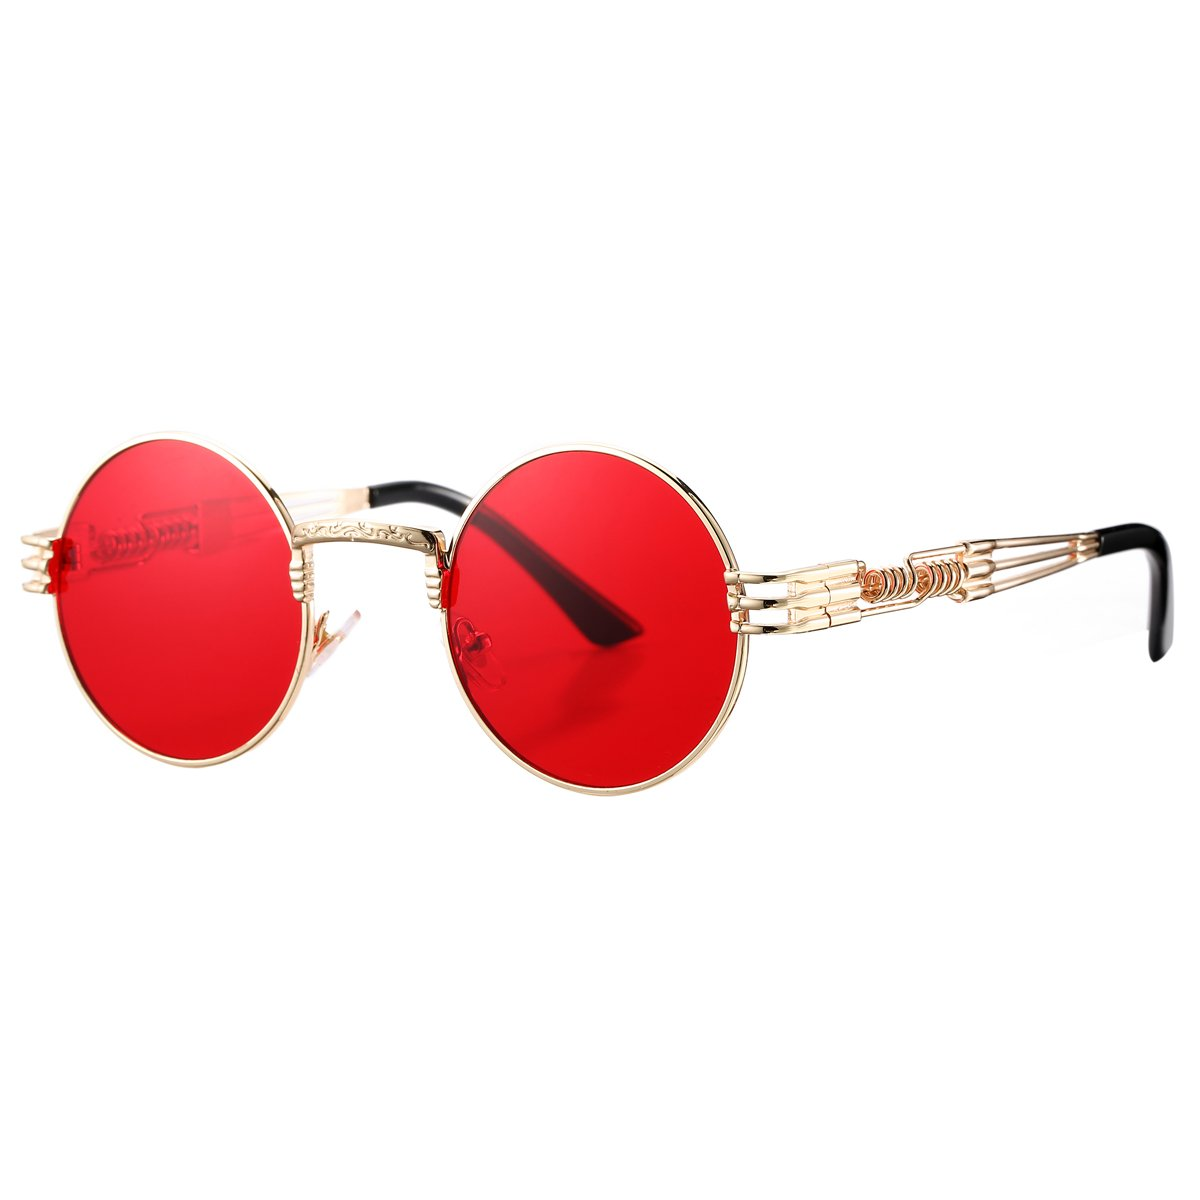 Pro Acme John Lennon Round Steampunk Sunglasses for Women Men Retro Metal Frame (Gold Frame/Red Lens) by Pro Acme